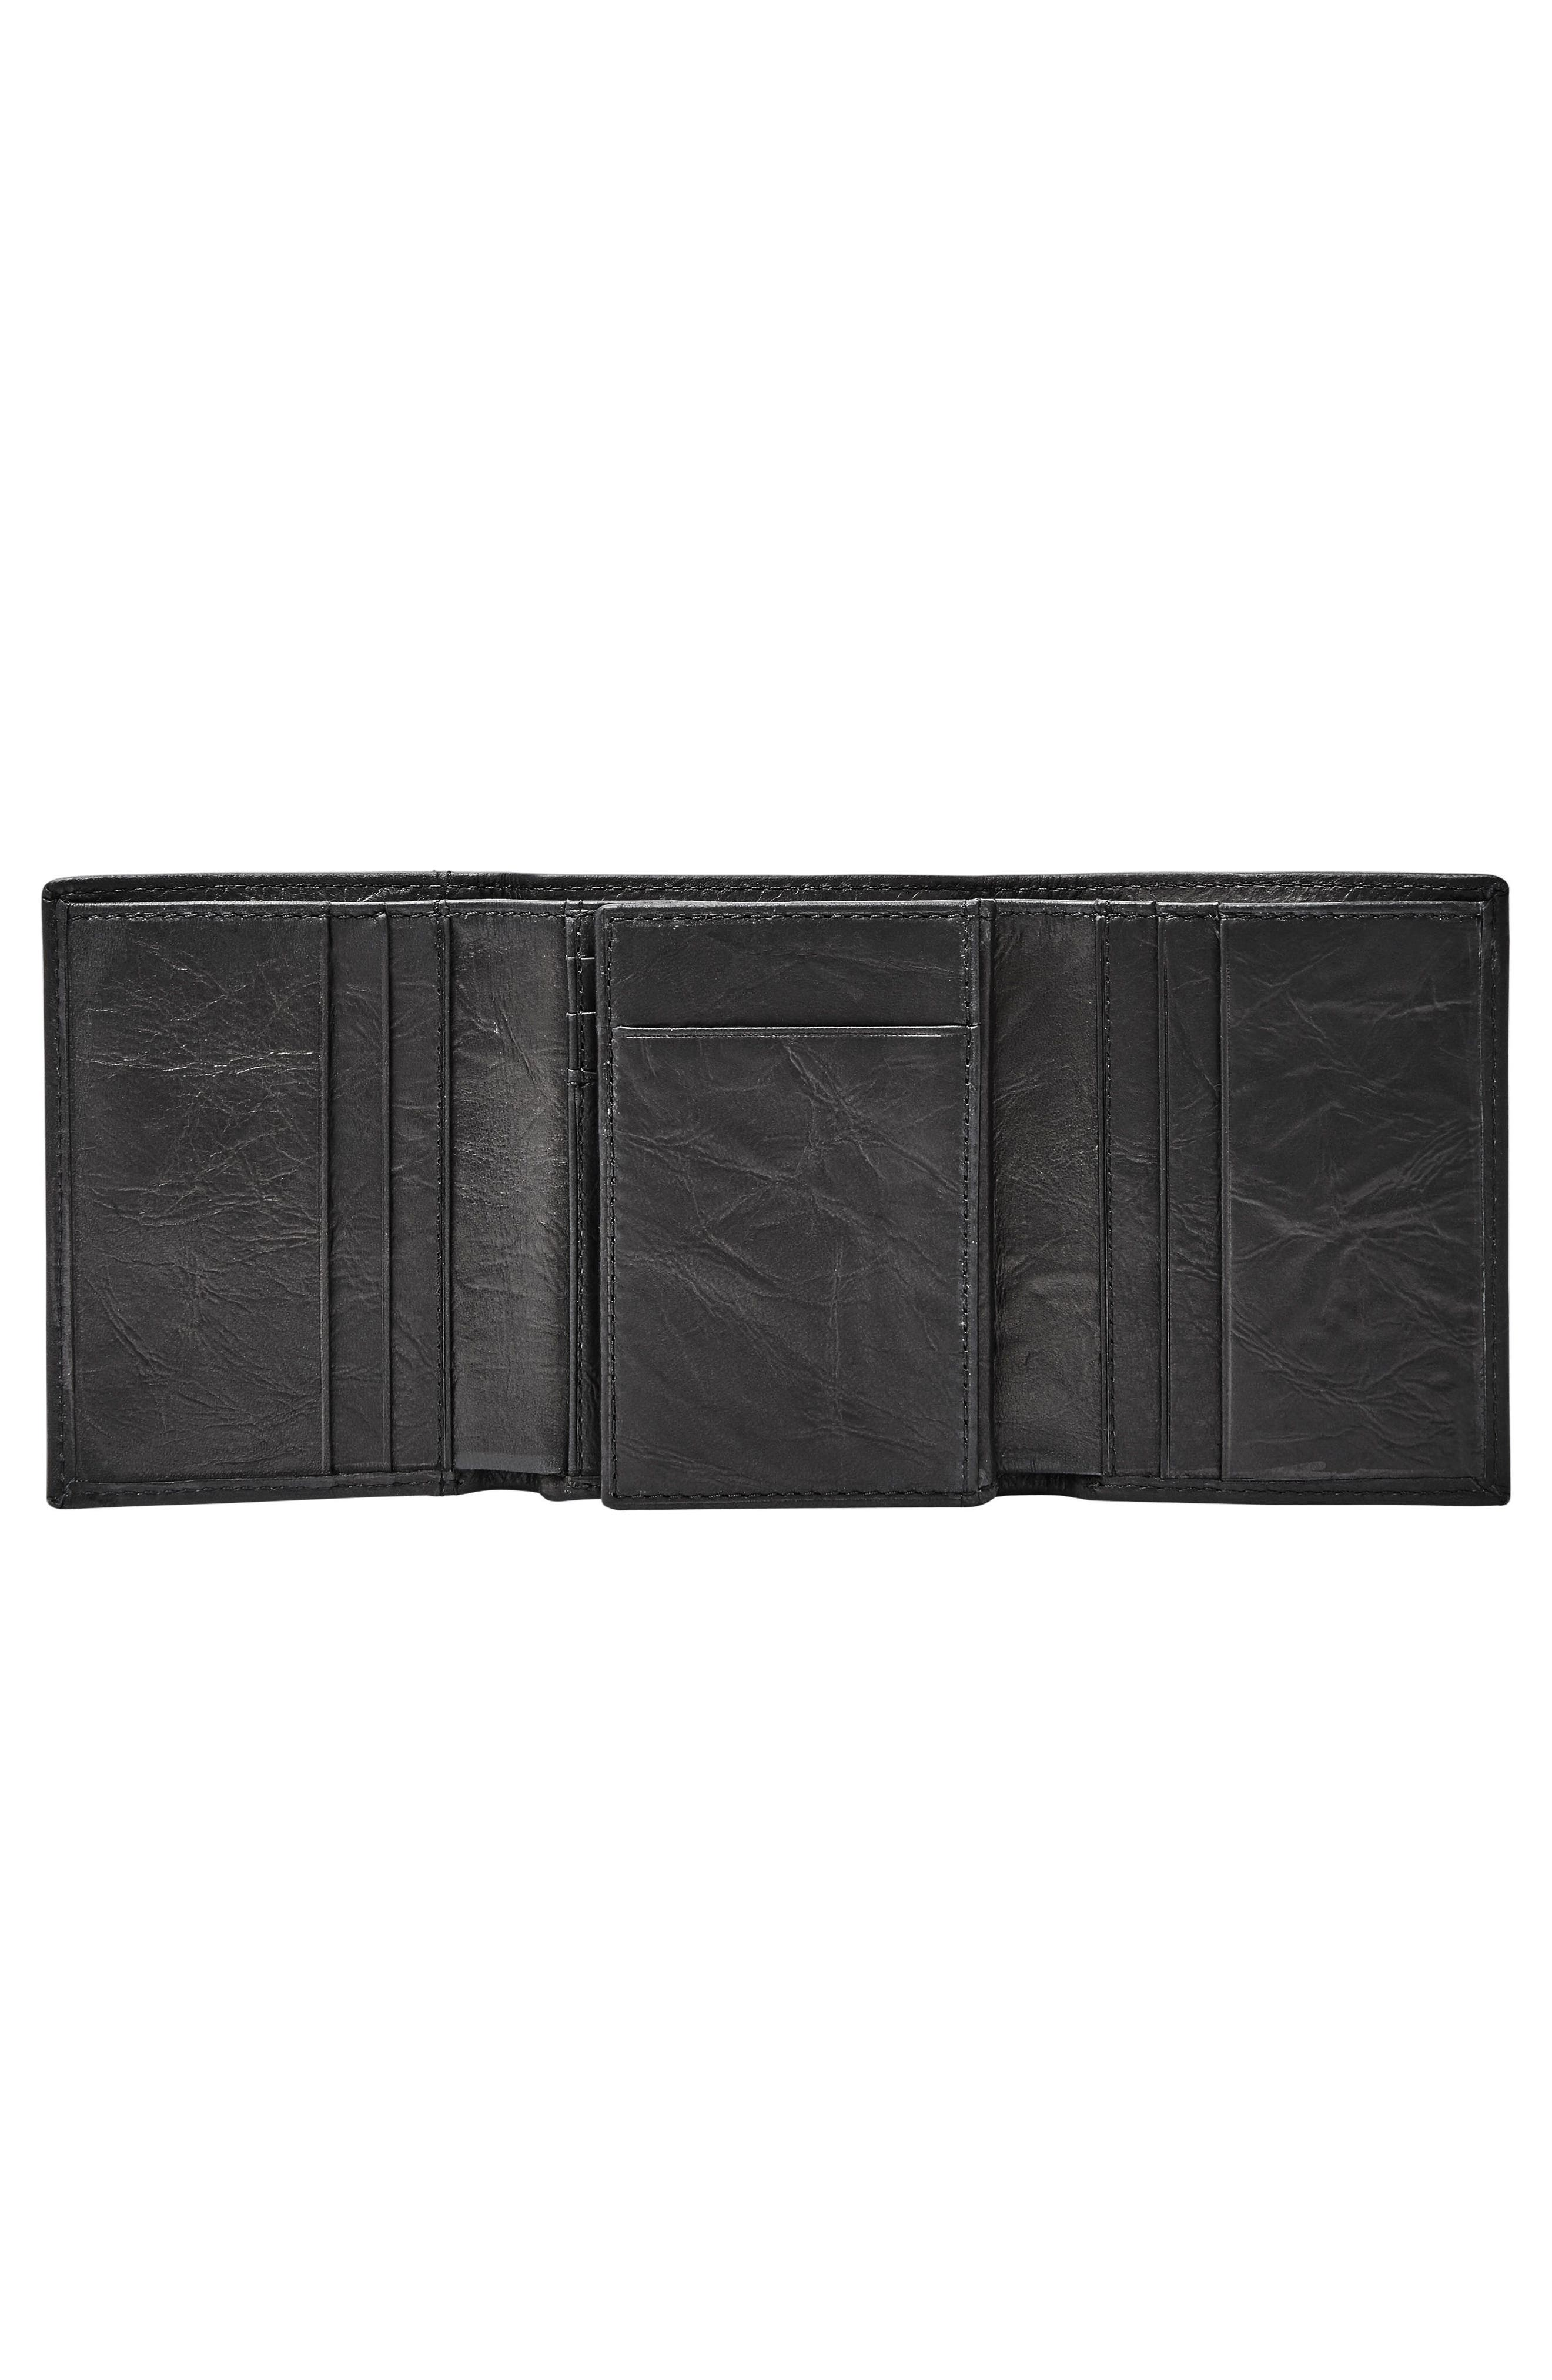 Neel Leather Wallet,                             Alternate thumbnail 2, color,                             Black